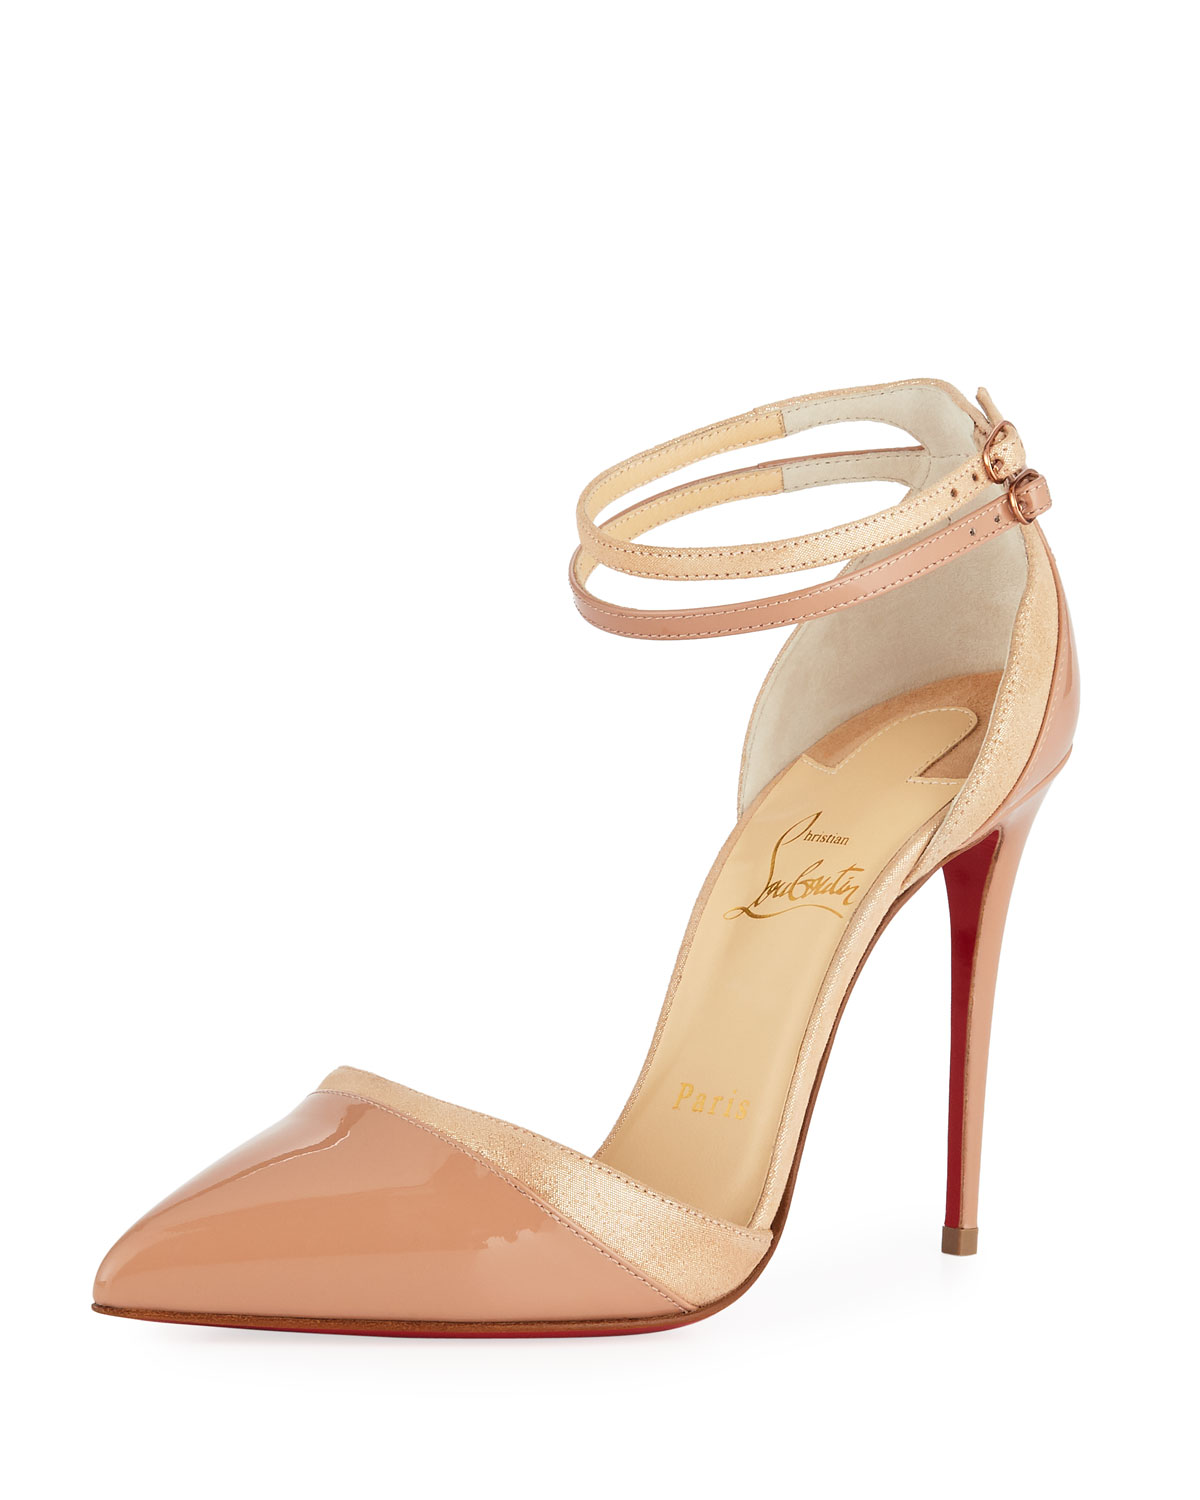 Uptown Double 100 black leather pumps Christian Louboutin